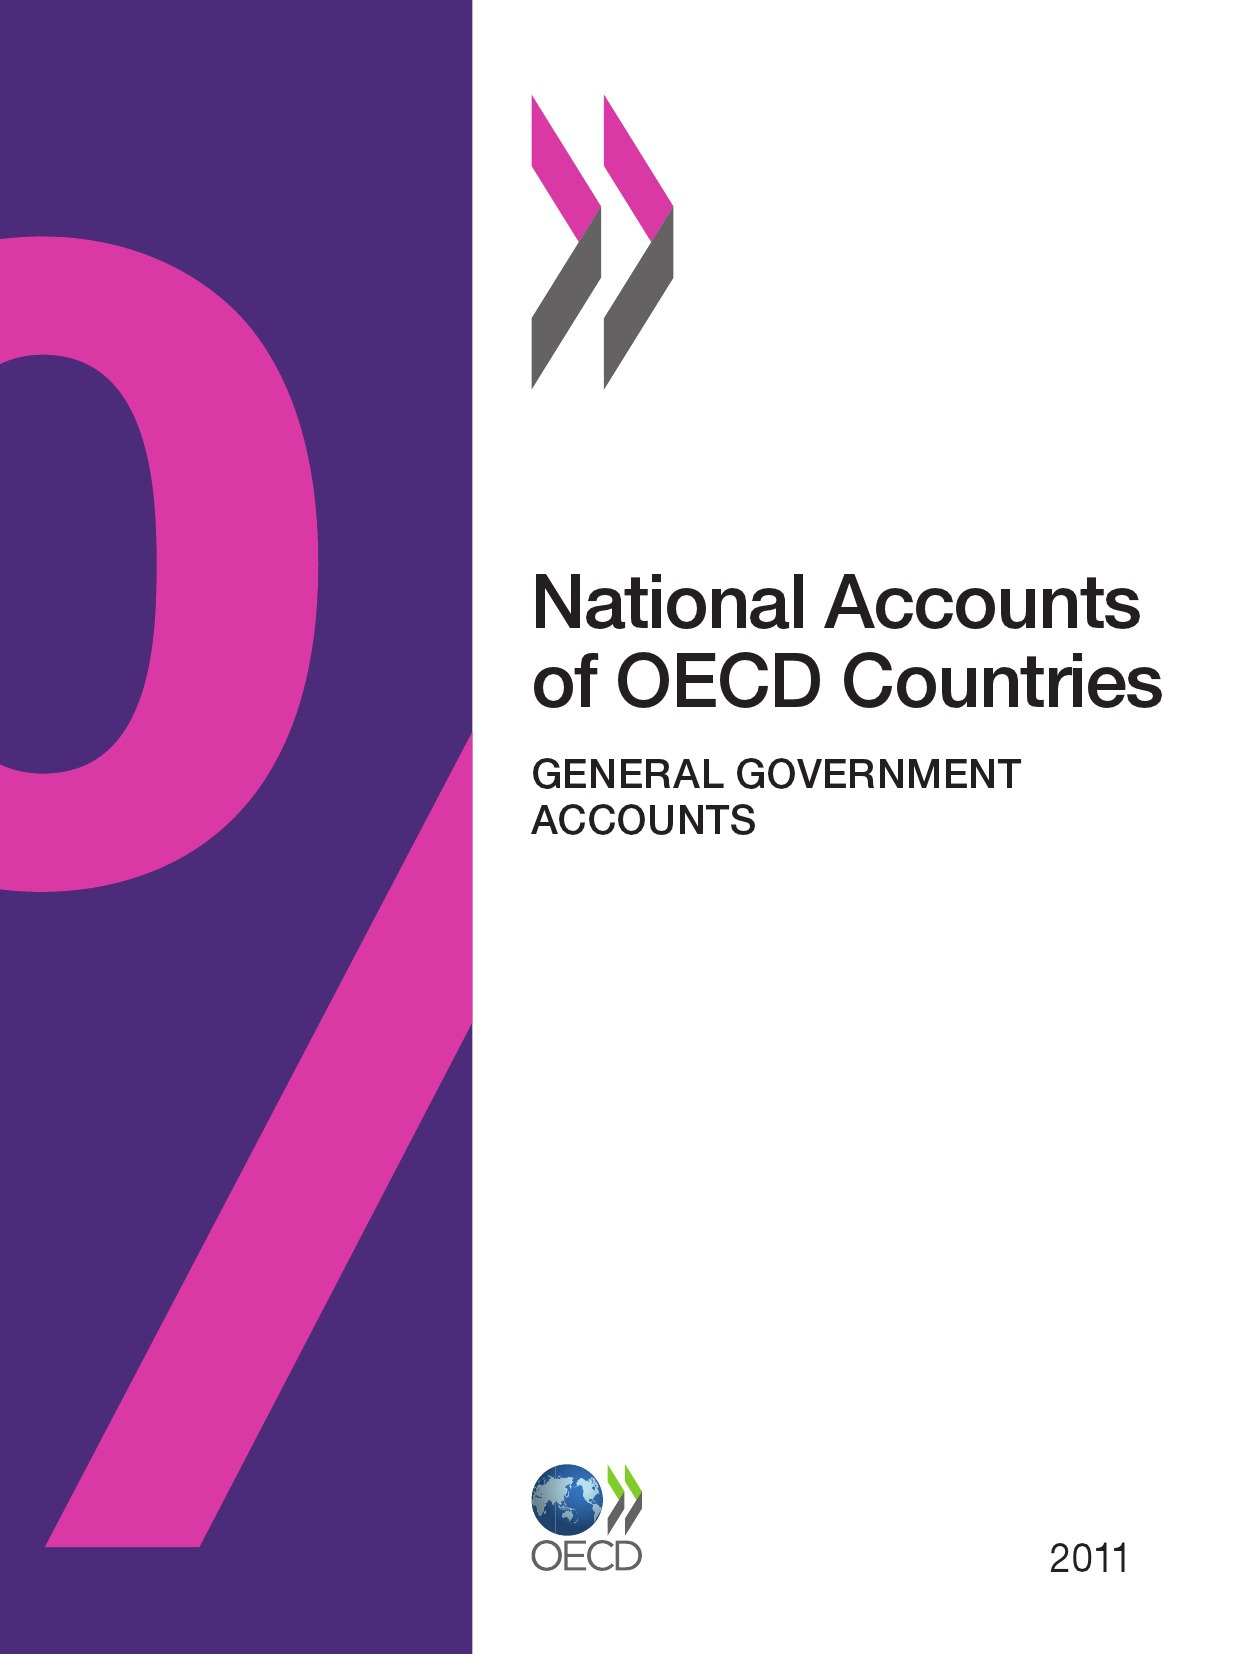 National Accounts of OECD Countries, General Government Accounts 2011